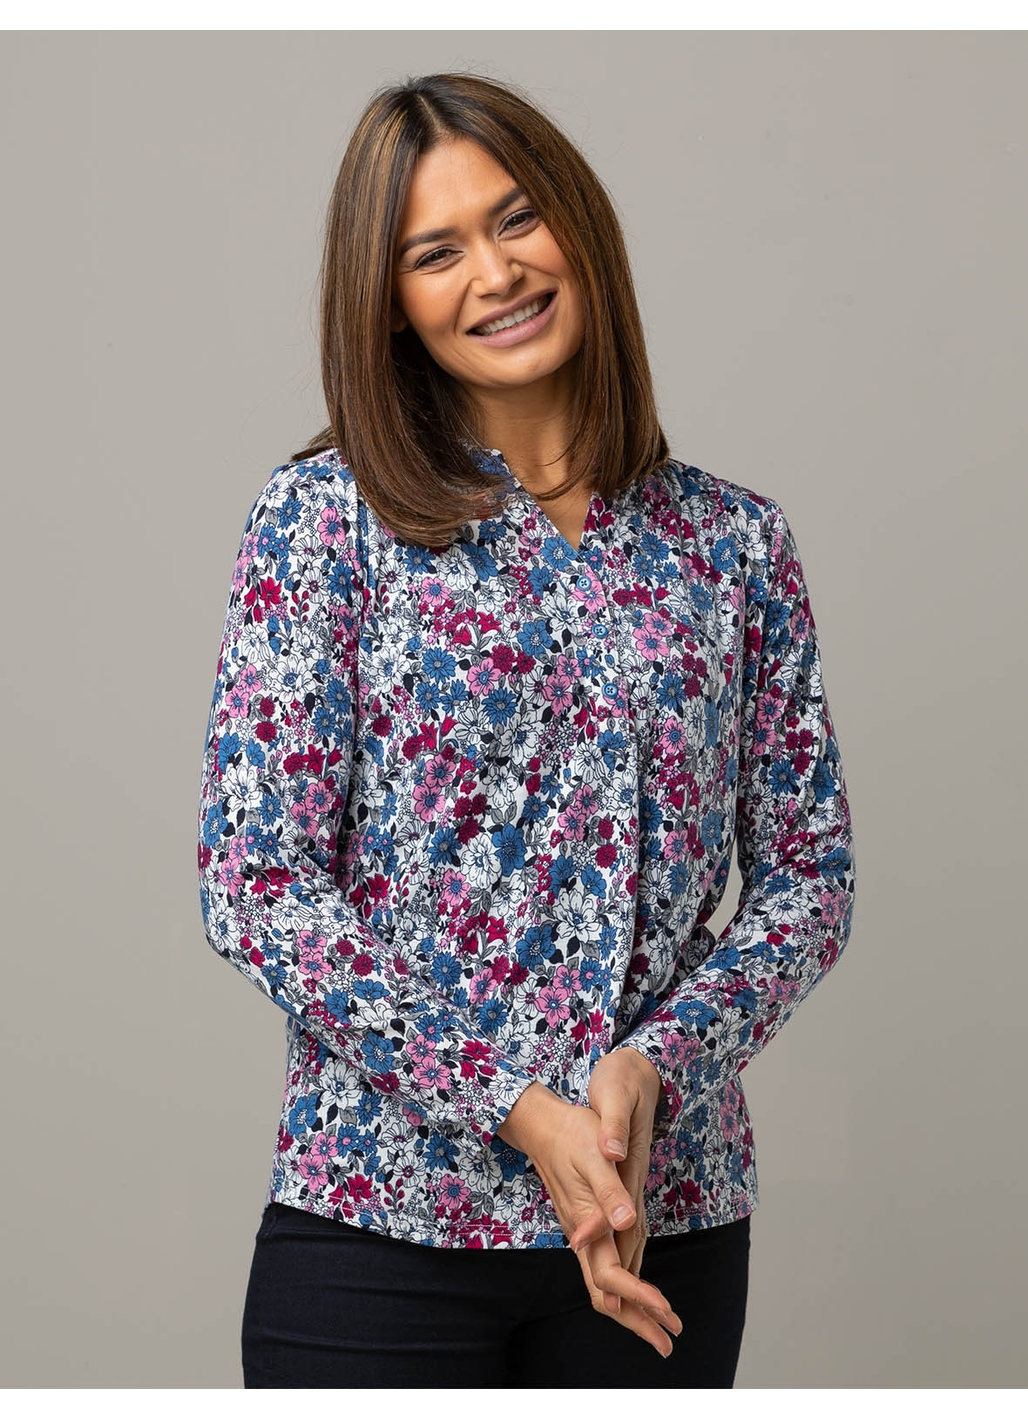 Celia Long Sleeve Floral Top in Denim Blue